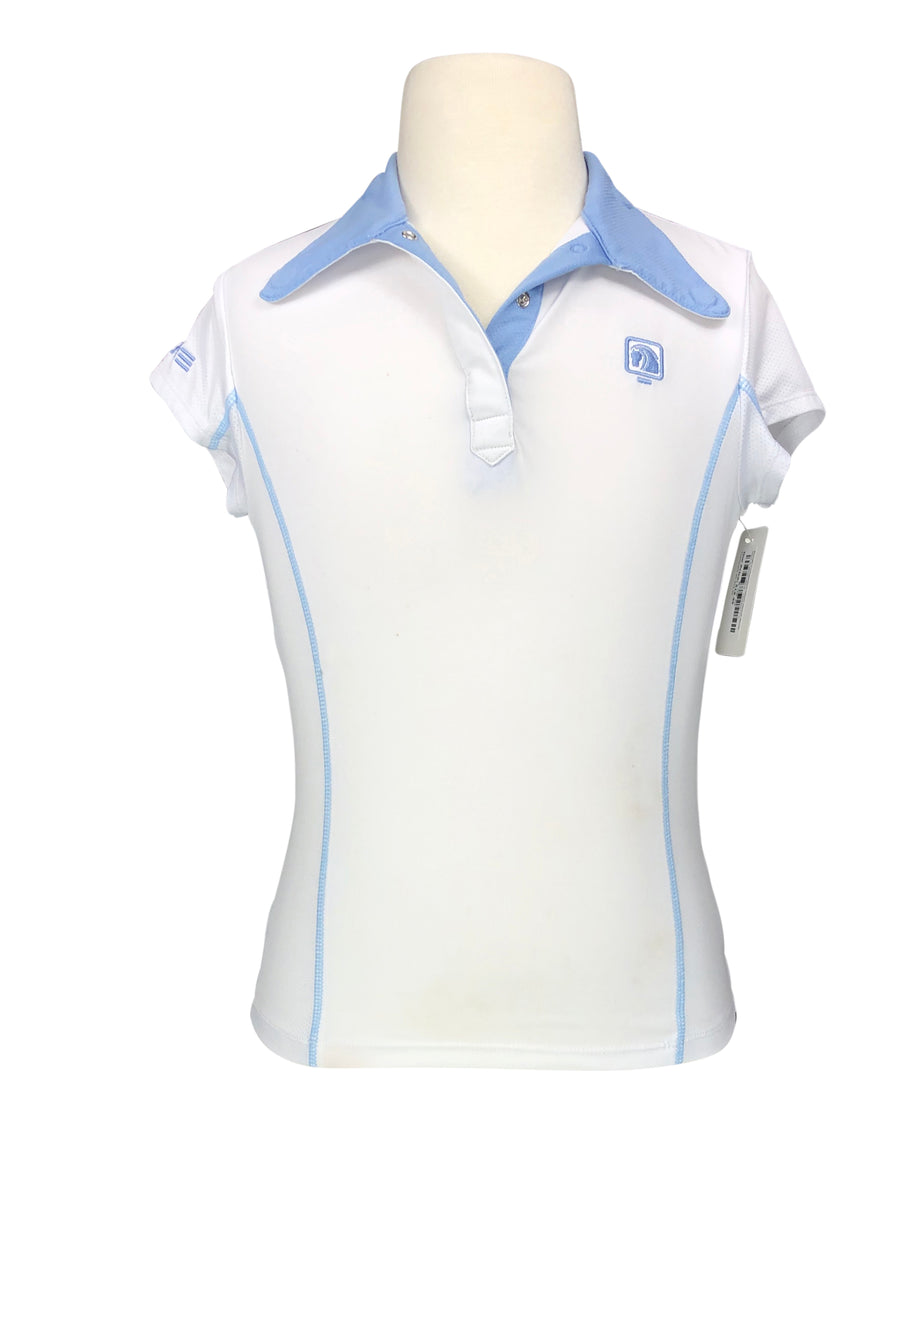 Romfh Competitor Short Sleeve Show Shirt in White/Blue - Children's S